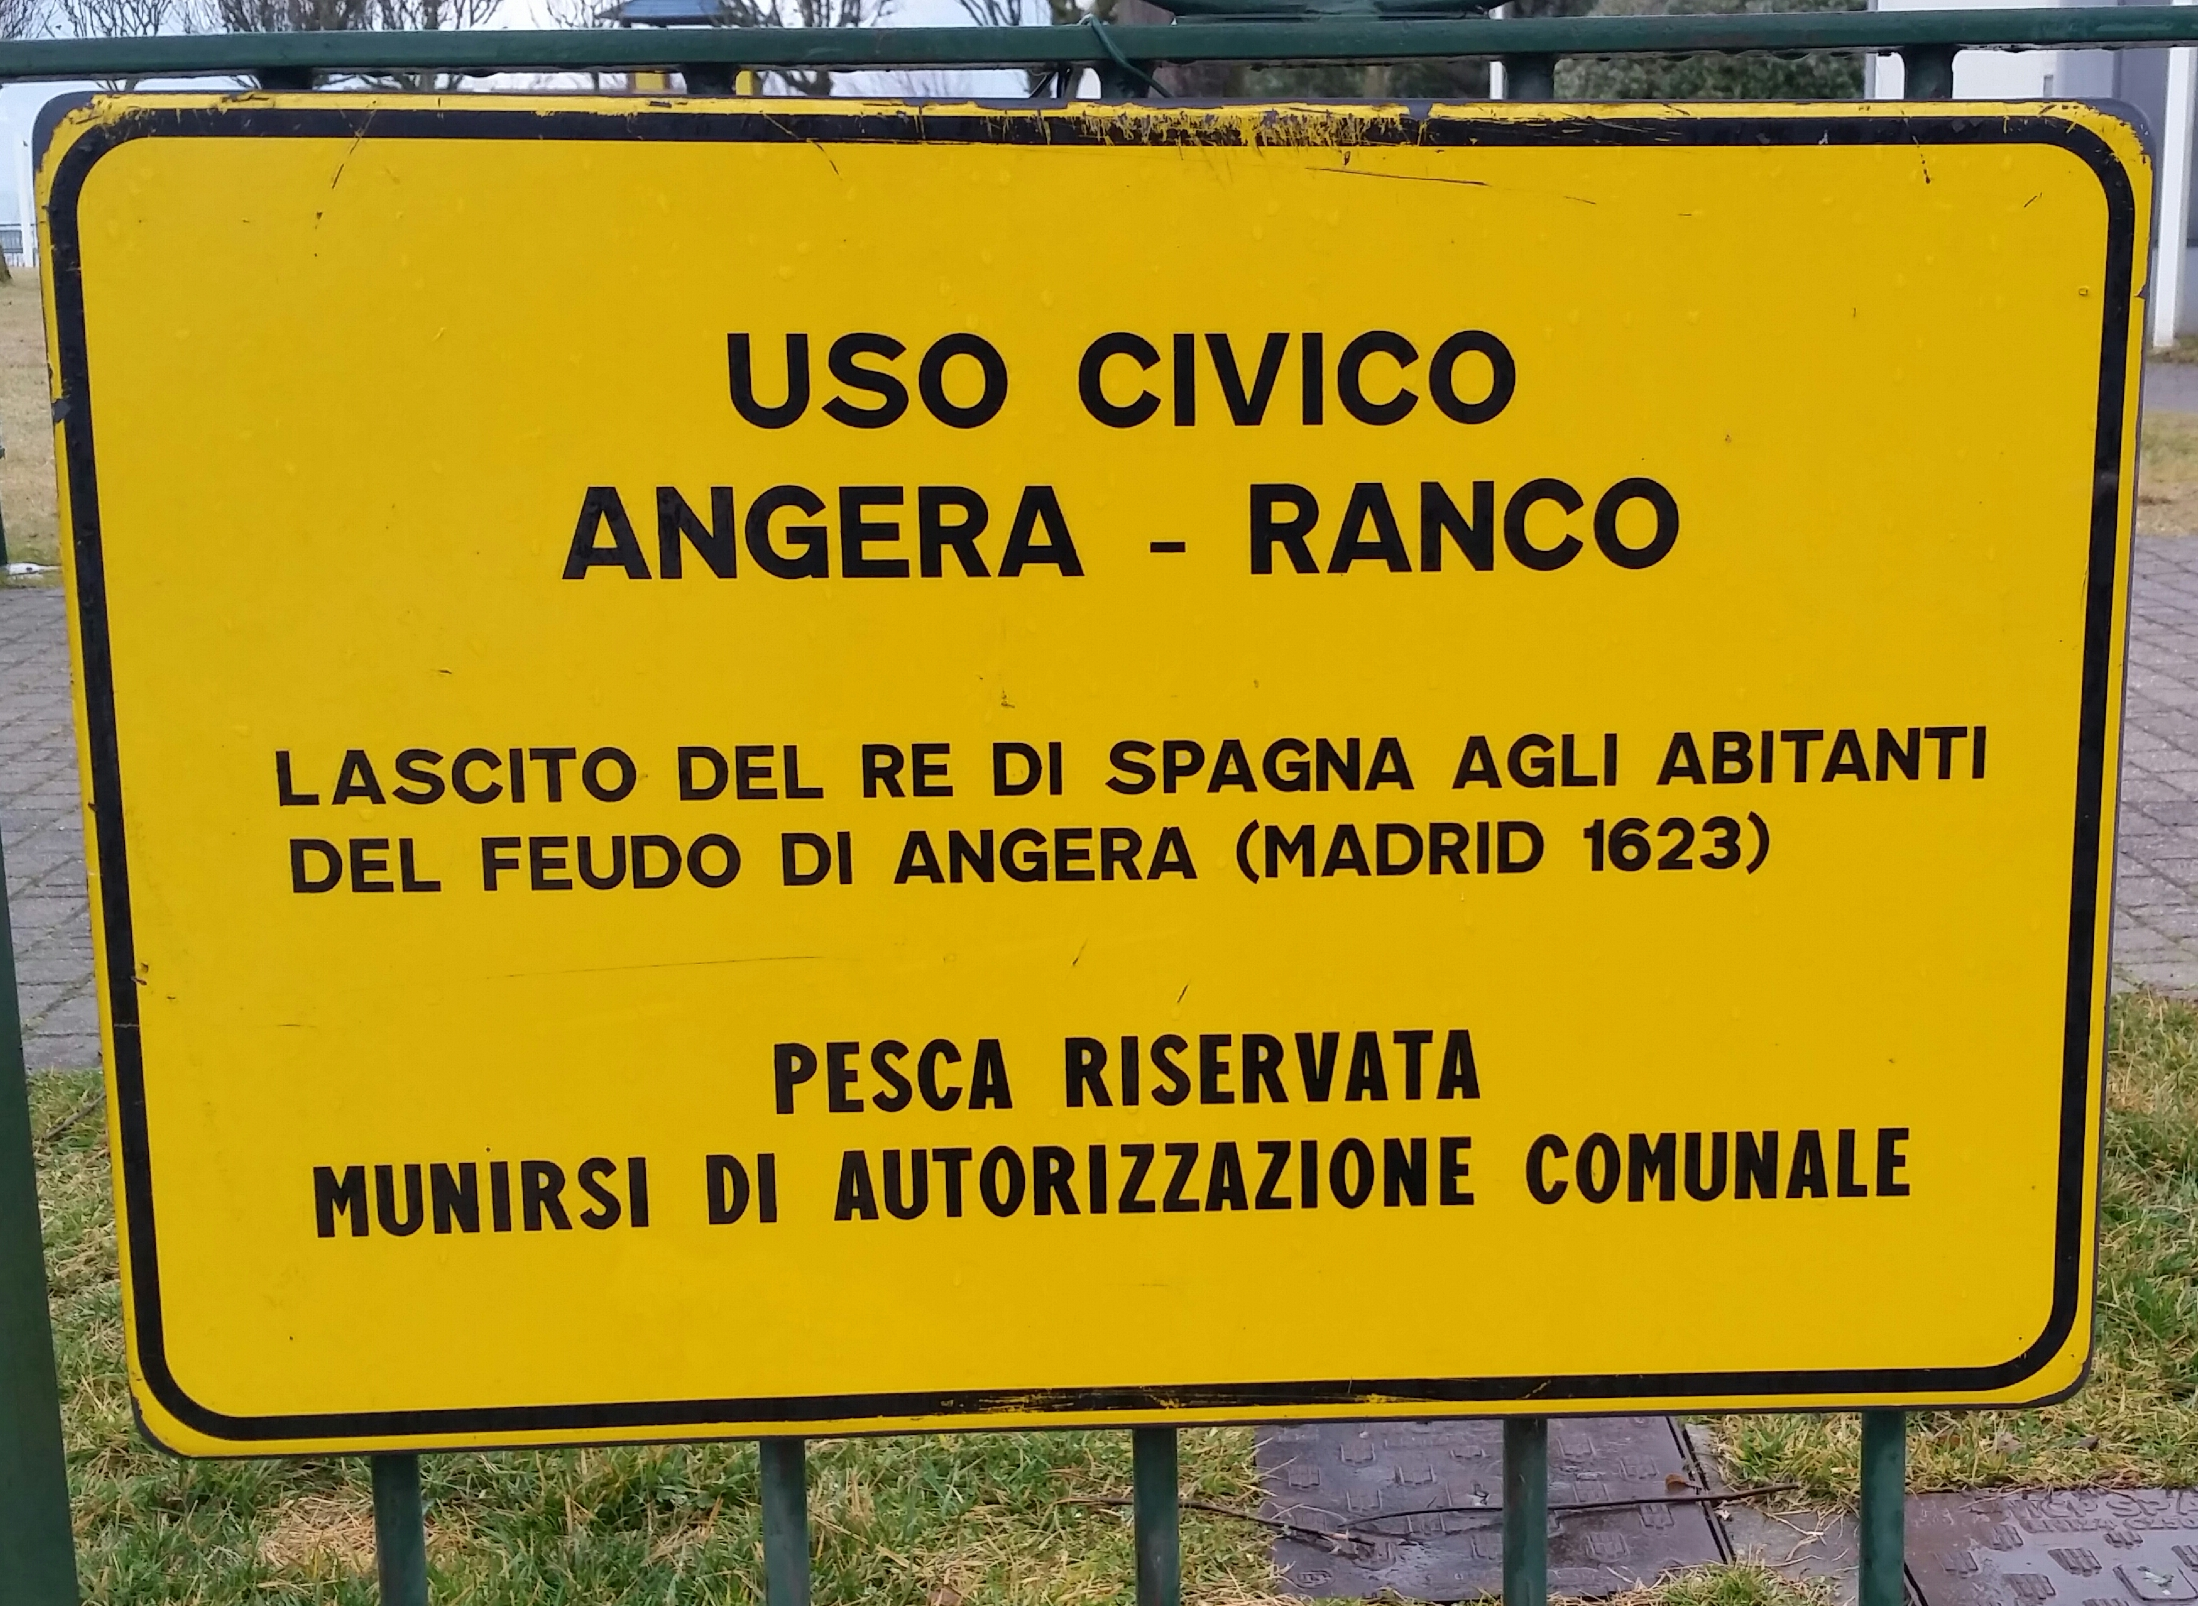 Uso civico di Ranco - Angera